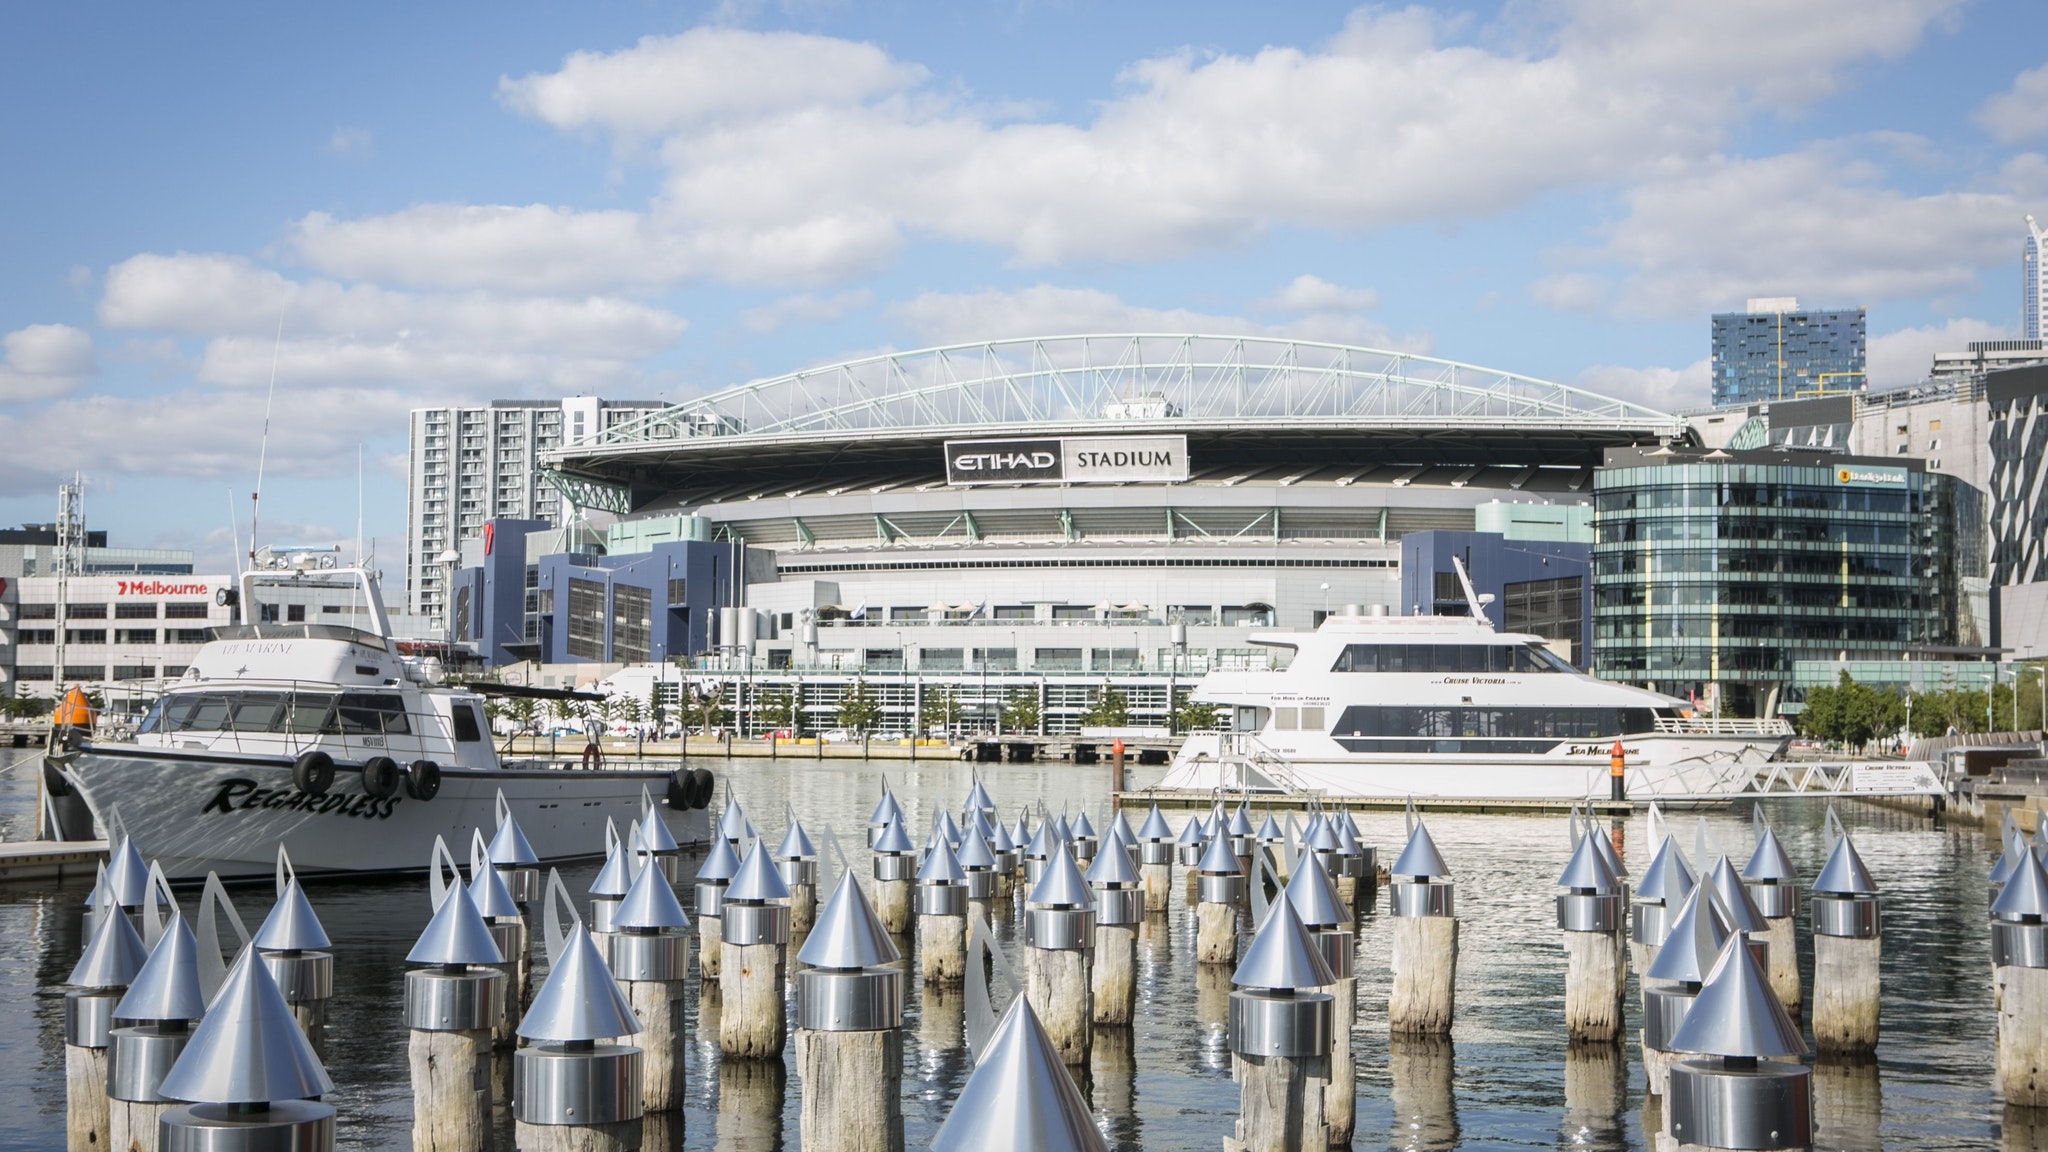 Etihad Stadium located in Docklands, Melbourne